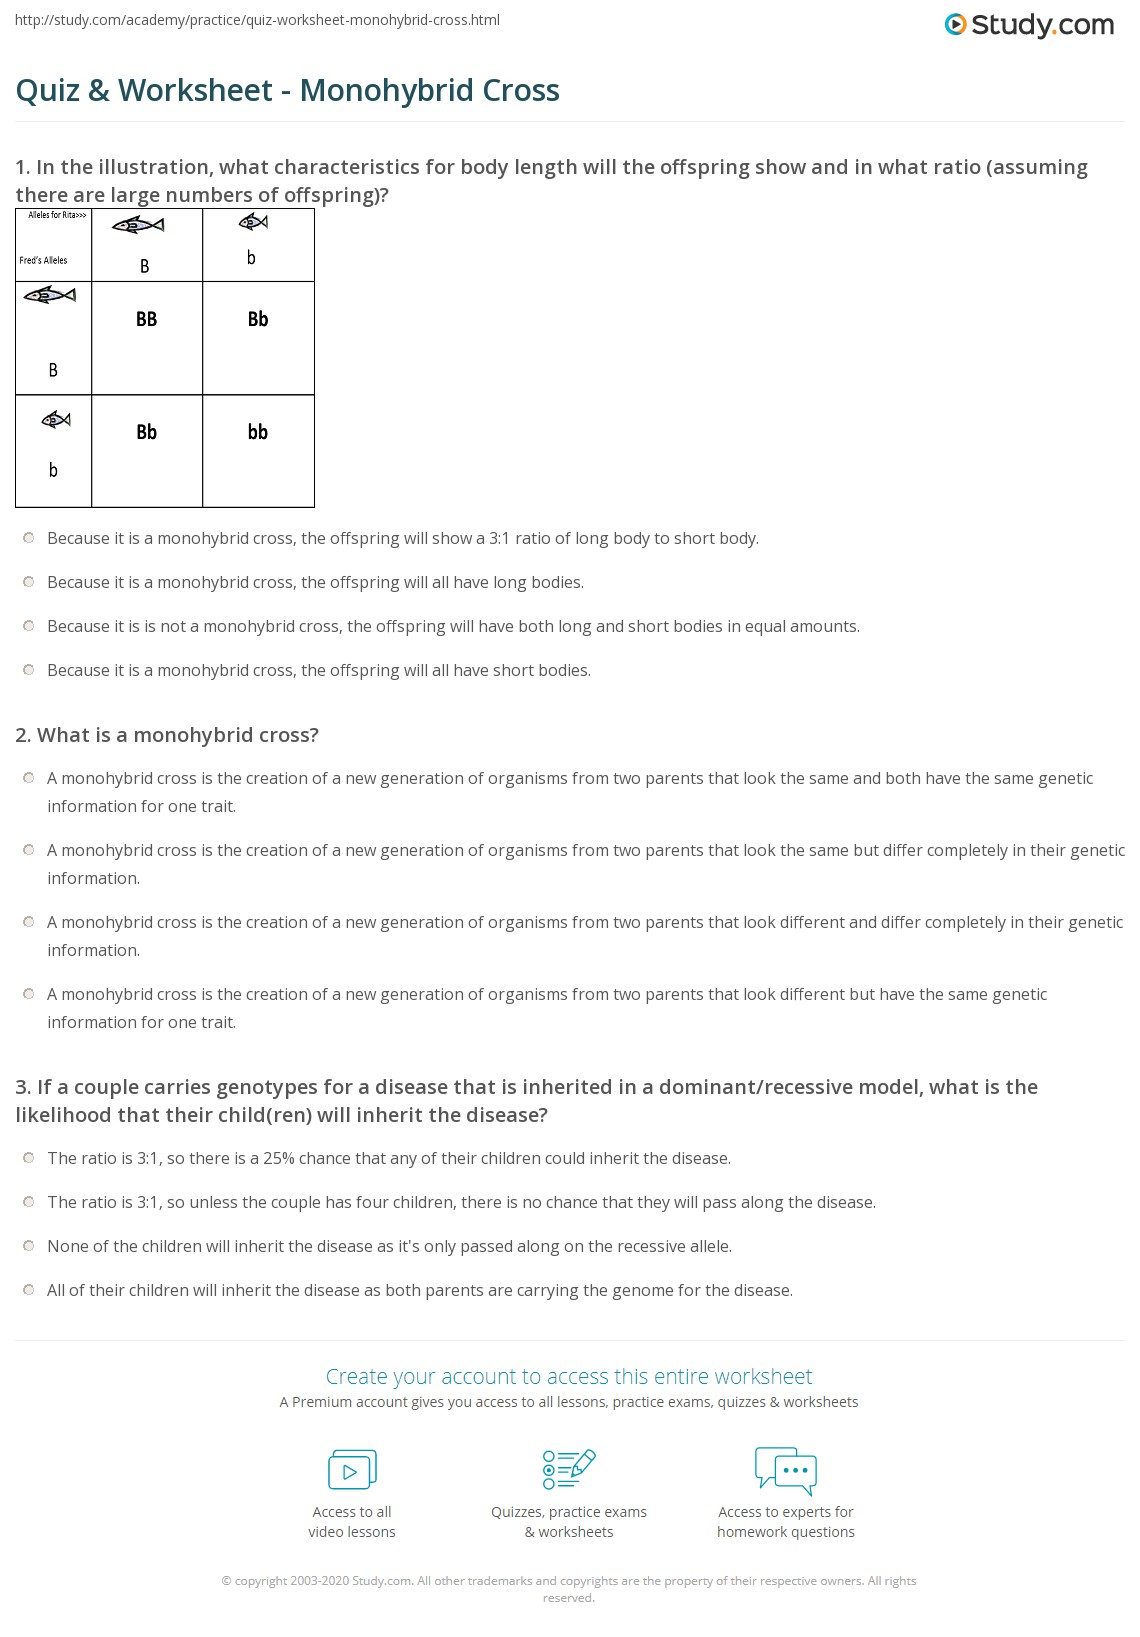 Quiz Worksheet Monohybrid Cross – Monohybrid Cross Worksheet Answers